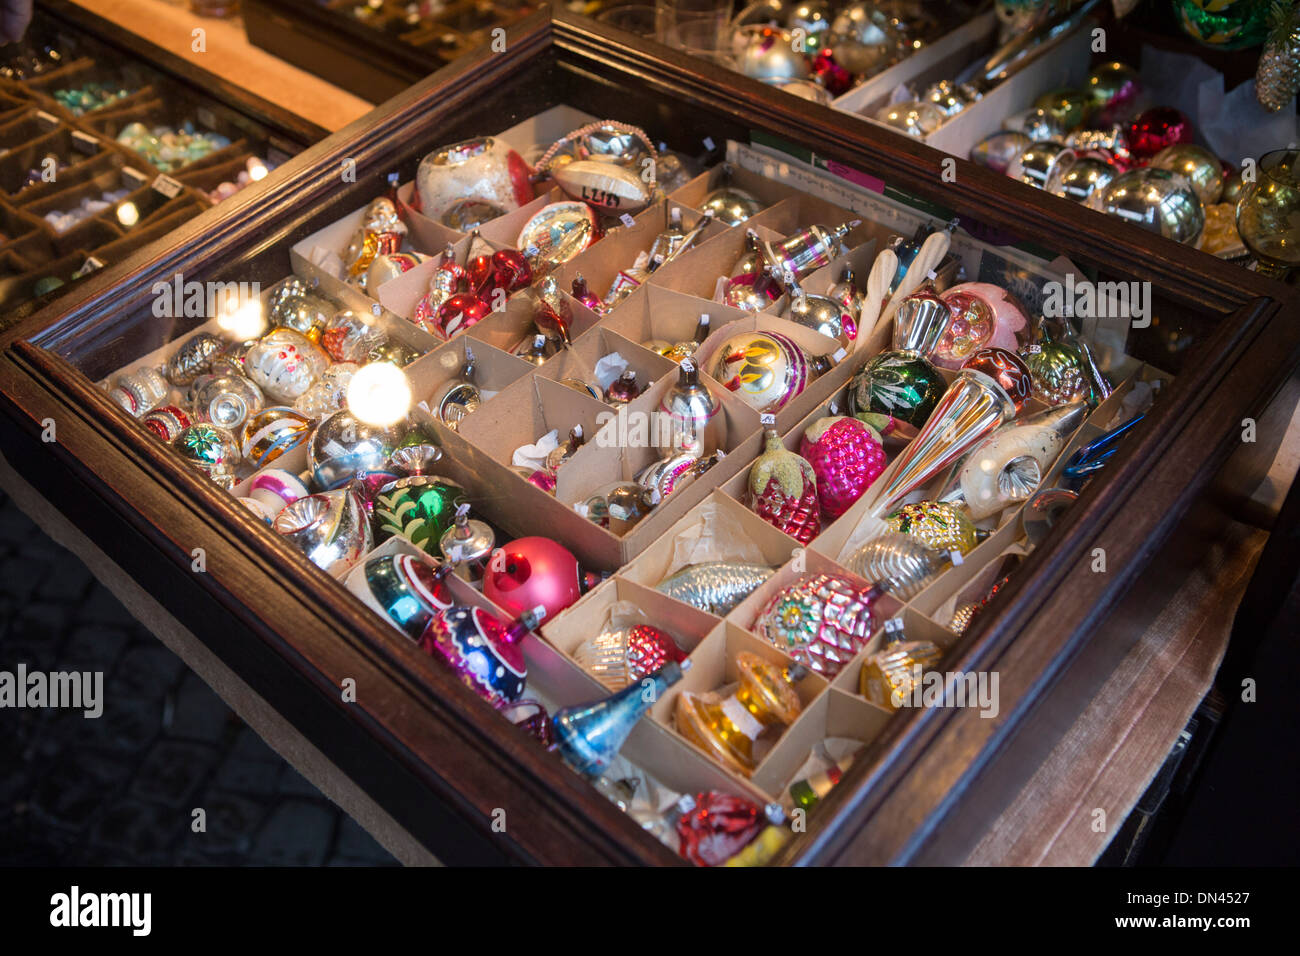 vintage christmas decorations for sale at christmas market cologne germany stock image - Vintage Christmas Decorations For Sale